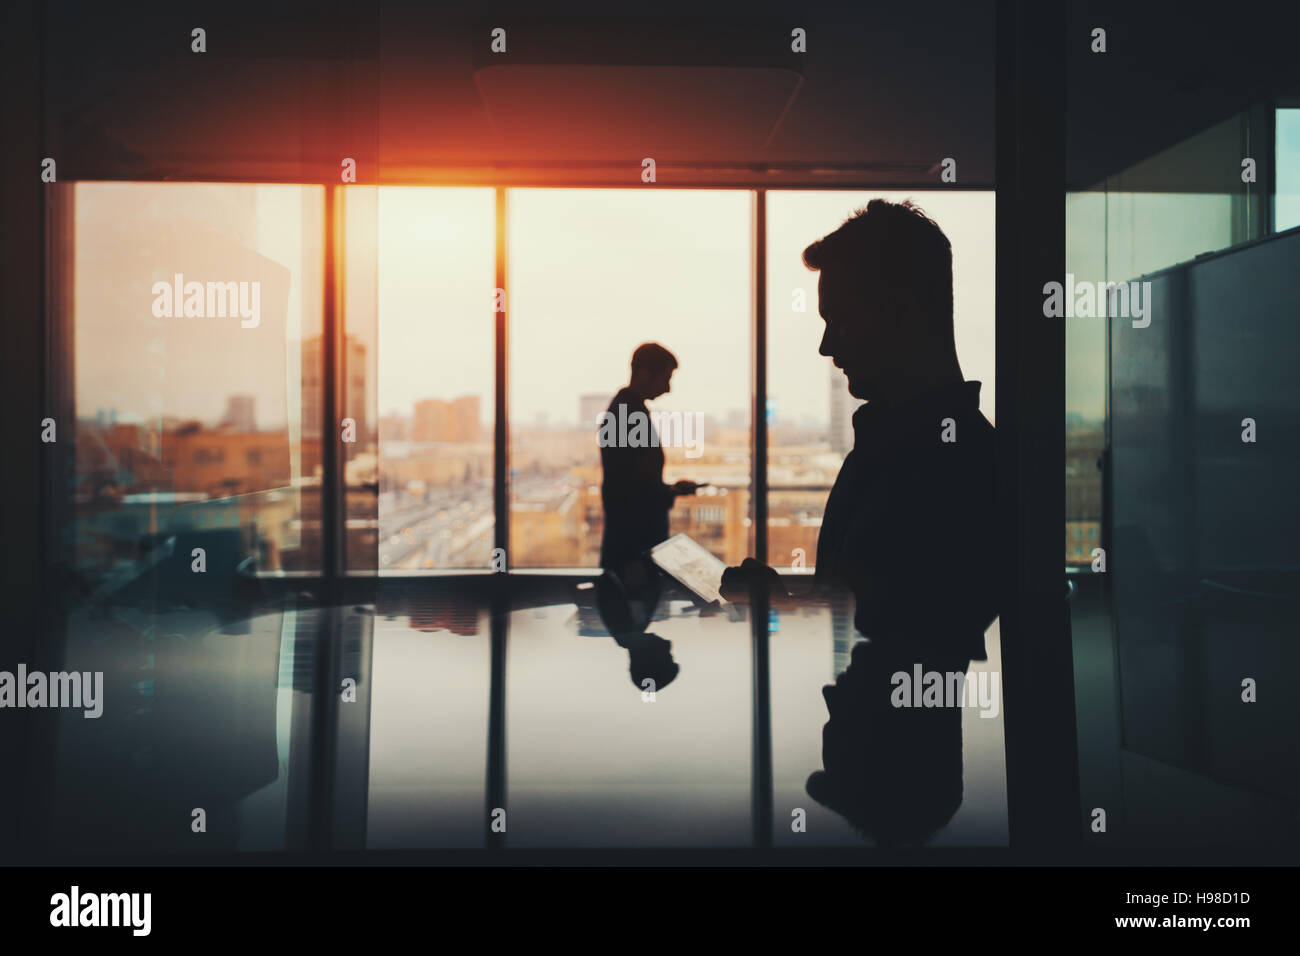 Silhouette of two businessmen working with their gadgets in office interior of skyscraper, man in front with digital Stock Photo